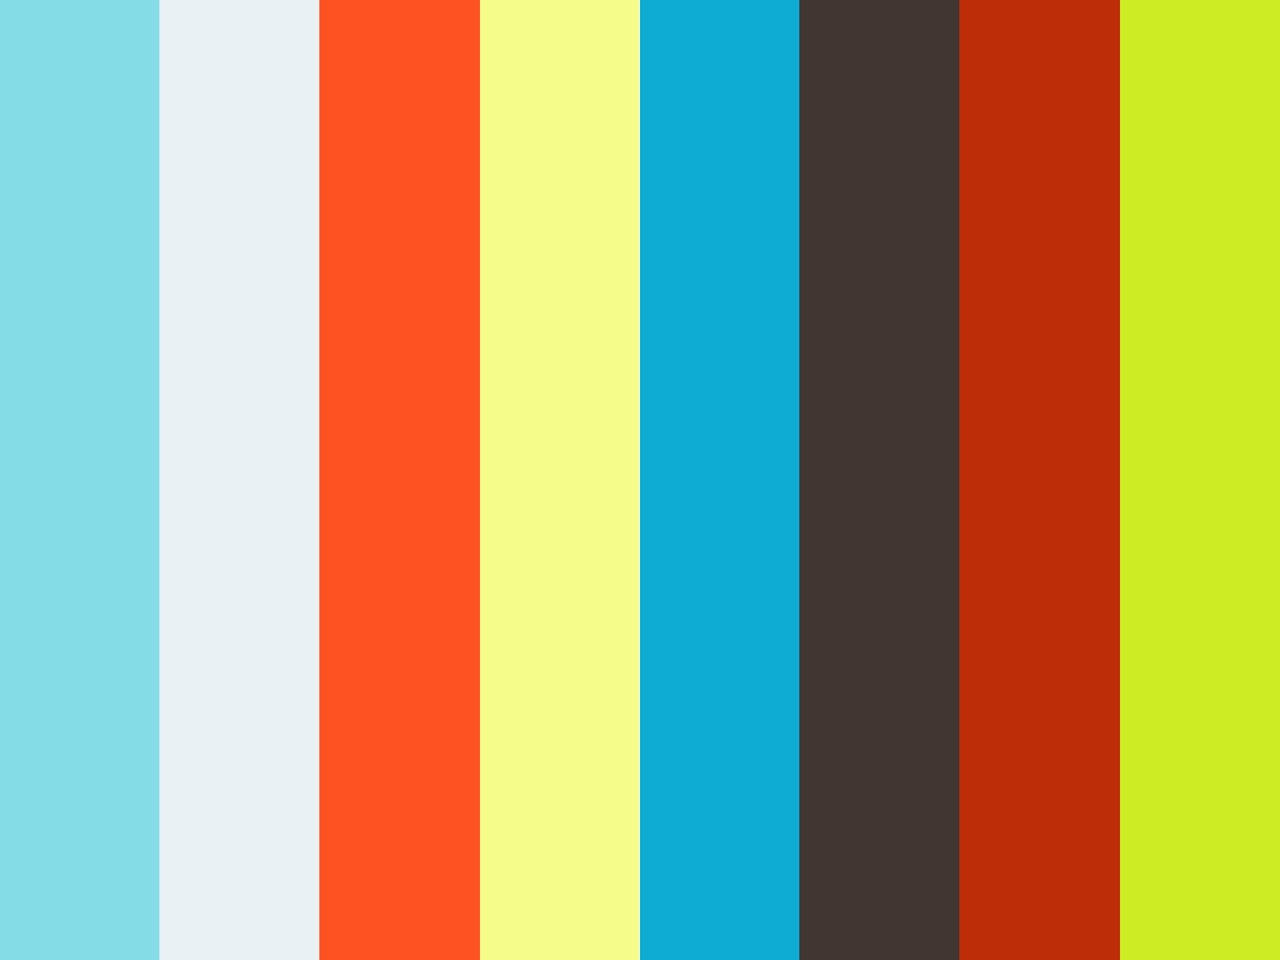 Avocados GuacWorld